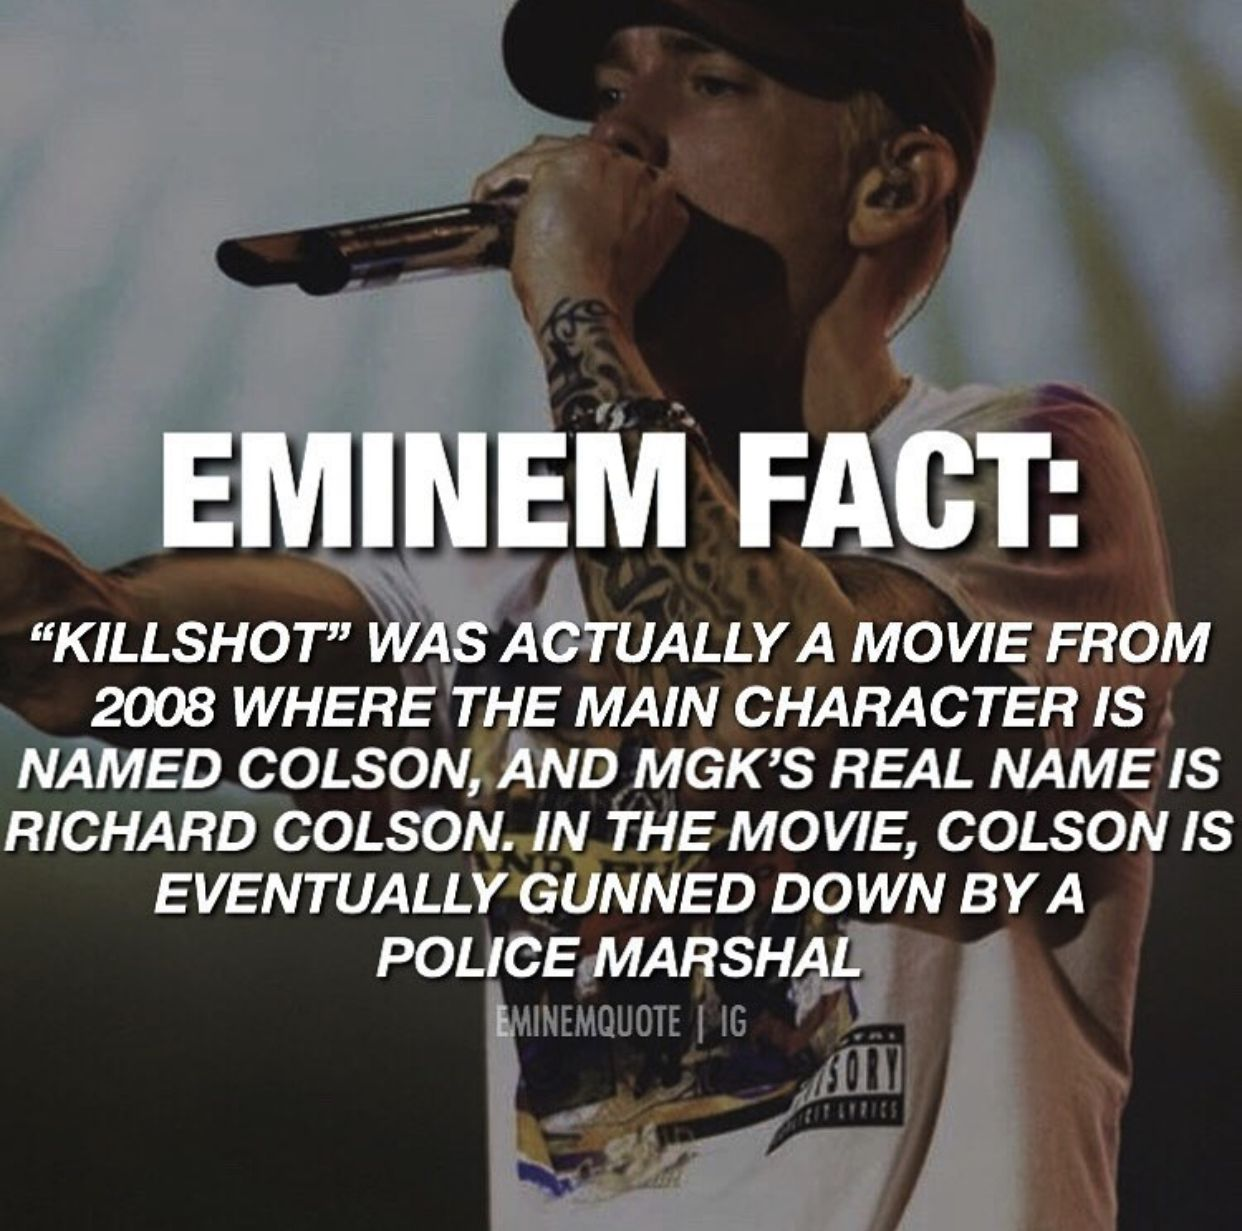 Pin by Jackie Trujillo on Eminem in 2019 | Eminem memes